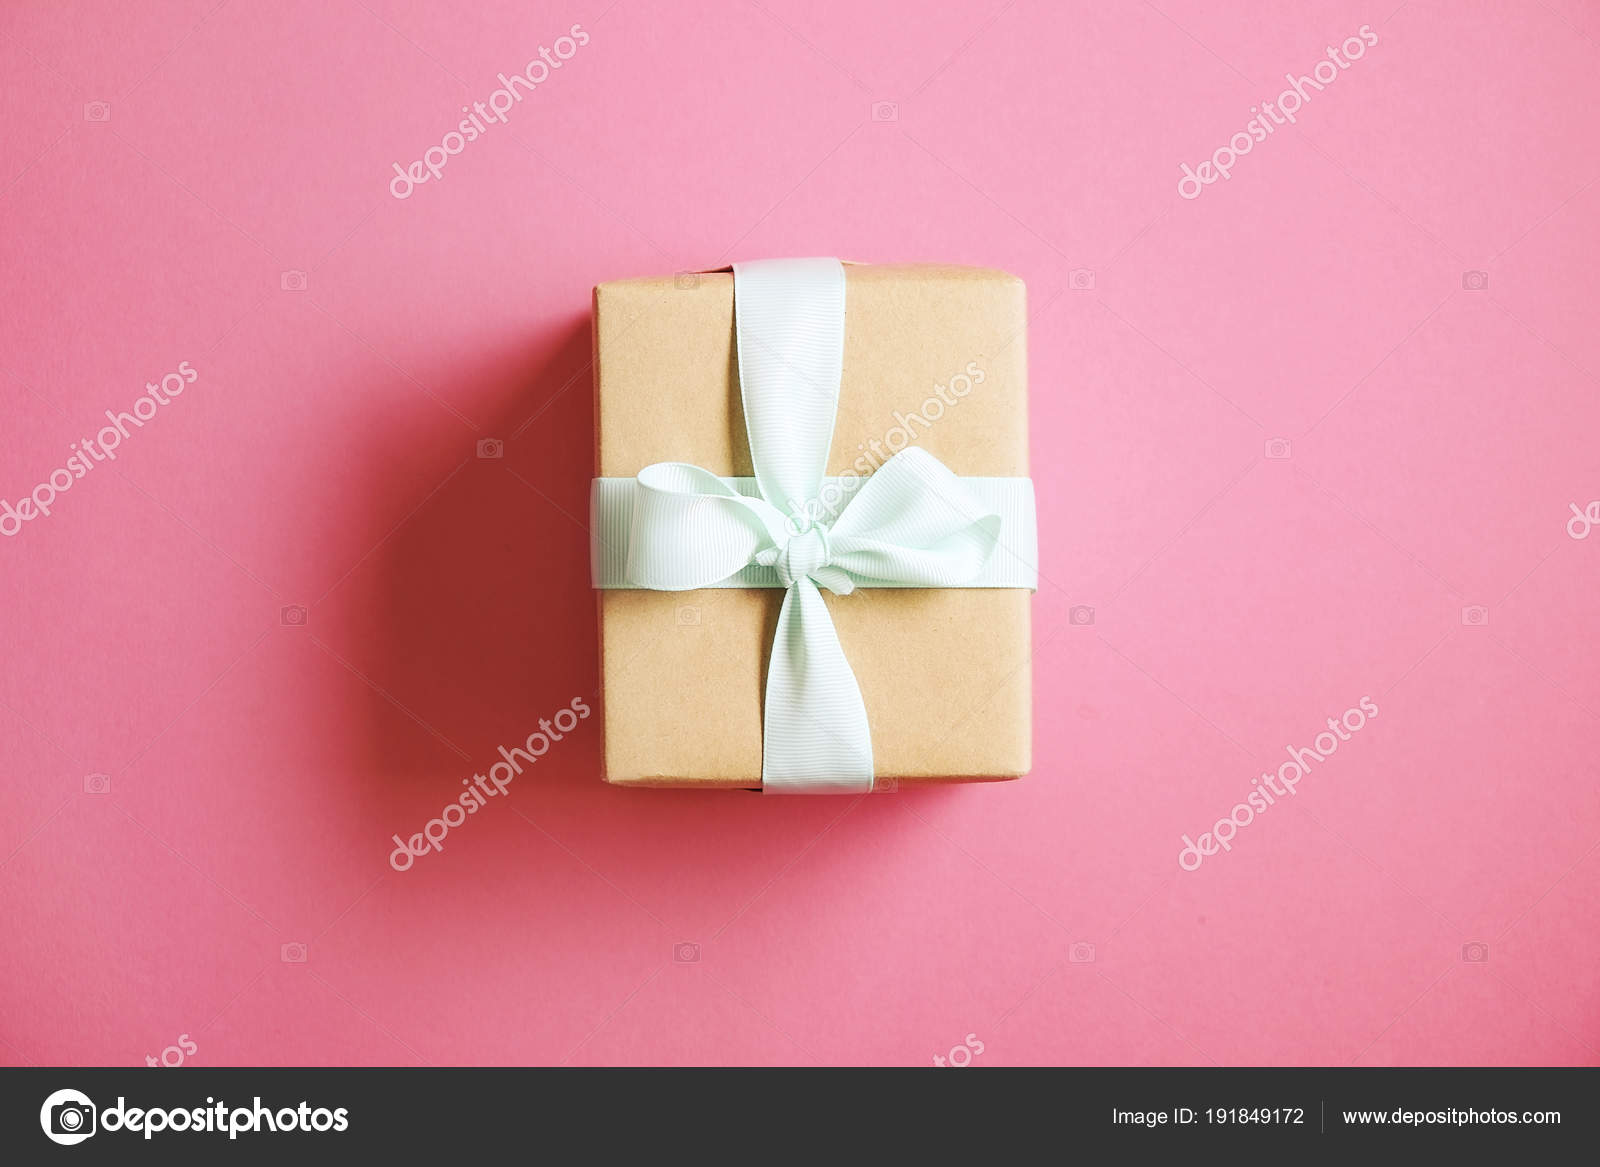 Rustic Composition With Beautiful Present In Craft Paper Wrapping